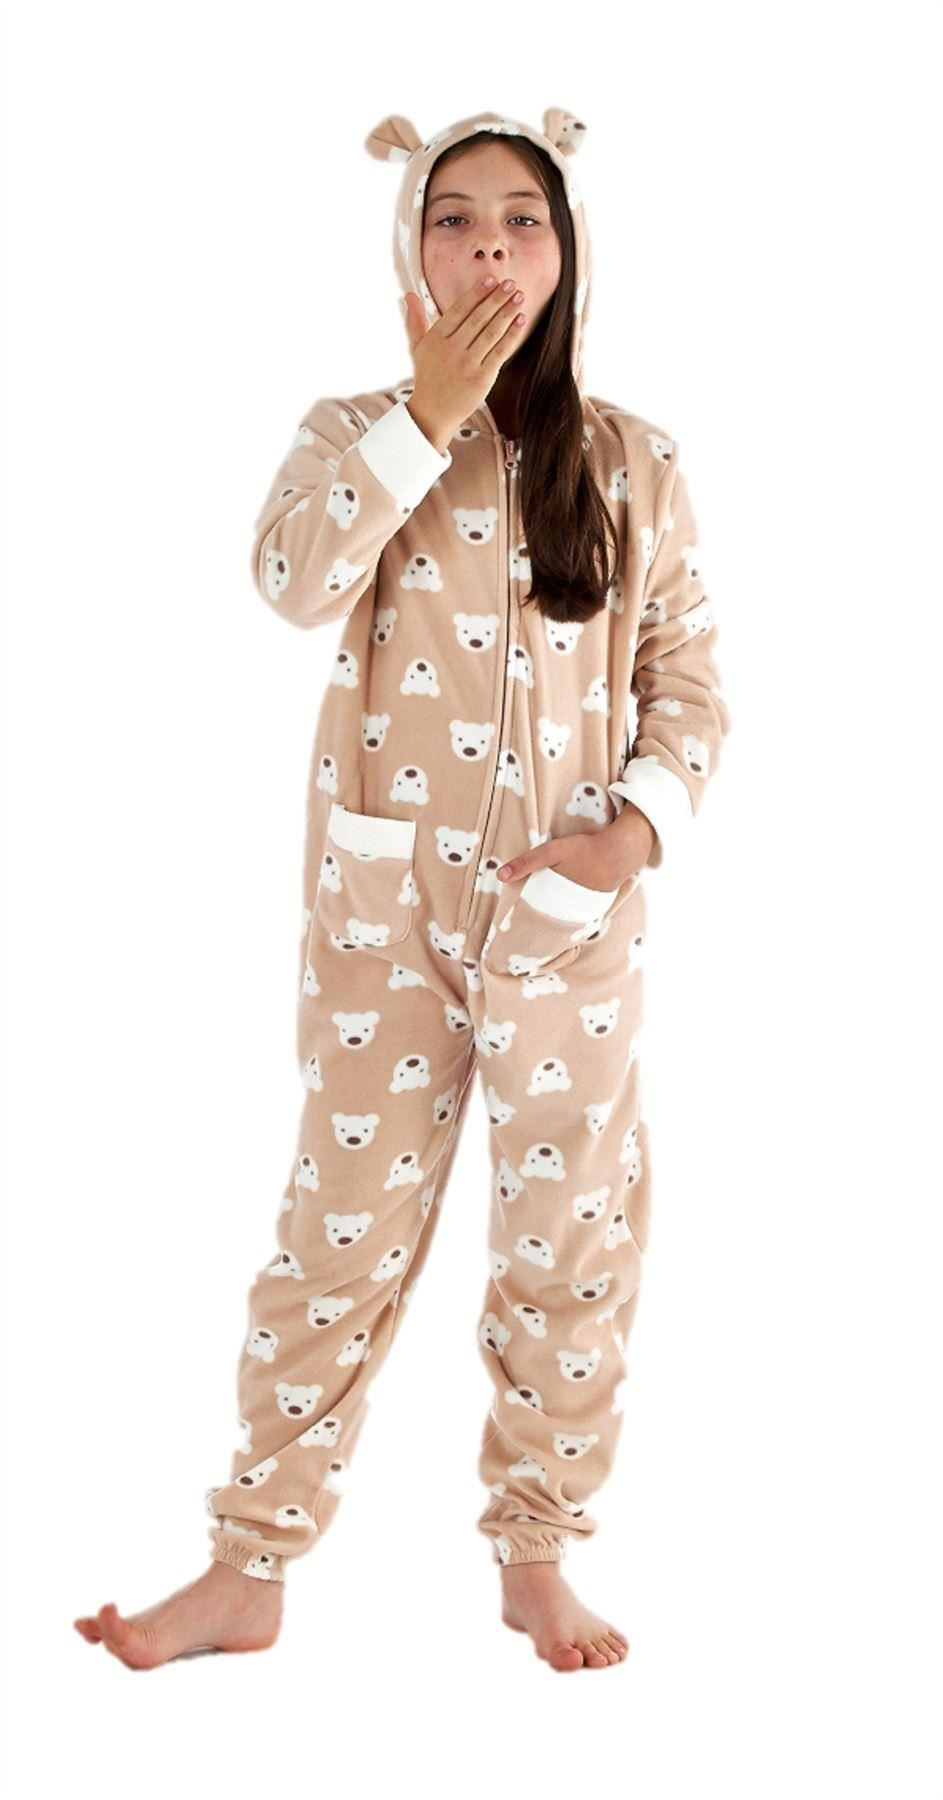 les filles de ceux de tous dans one piece hoodie pyjama pyjama 10 12 14 16 18 20 teddy ebay. Black Bedroom Furniture Sets. Home Design Ideas